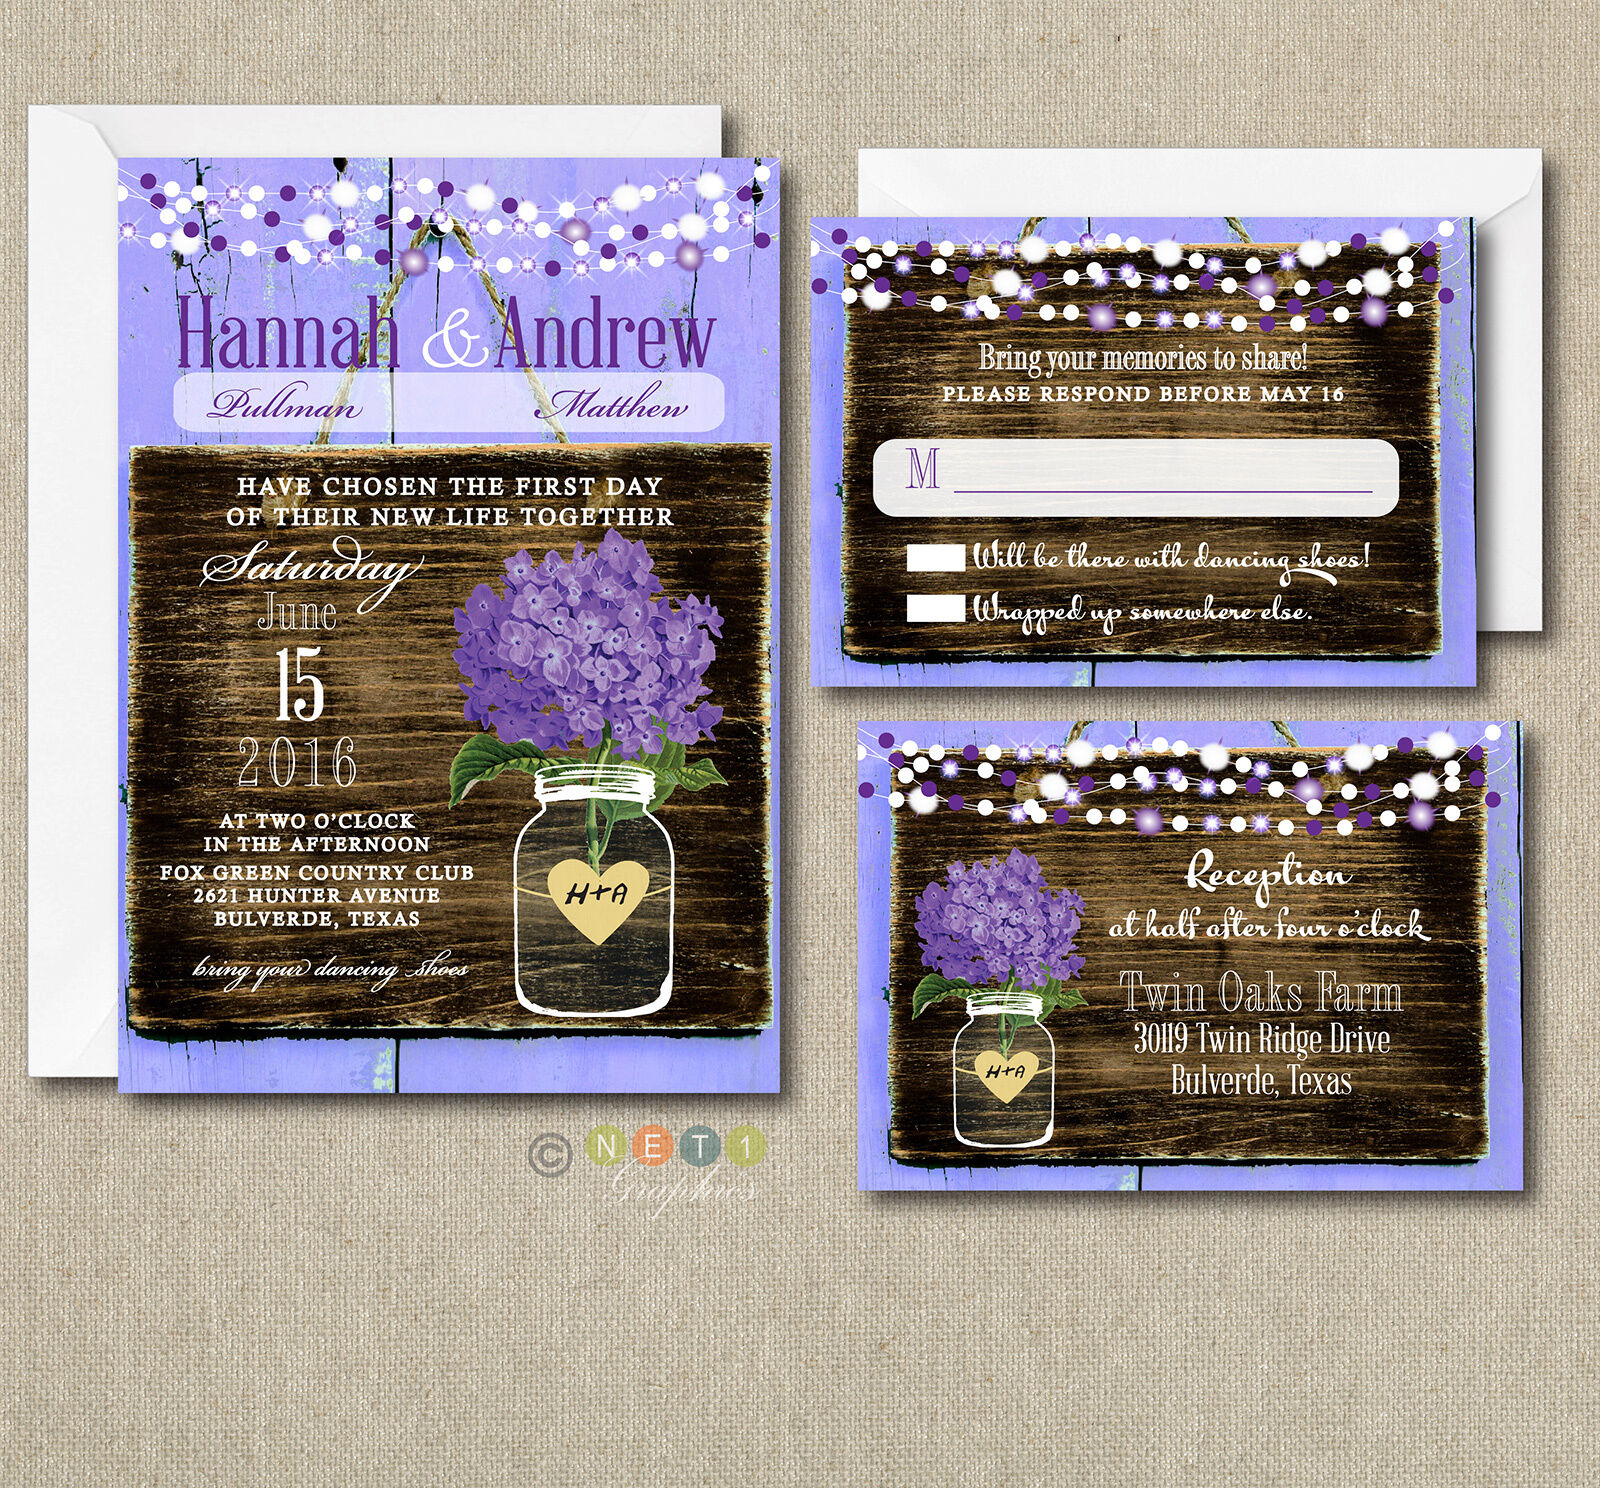 100 Wedding invitations Suite violet Hydrangea Rustic Style with Envelopes